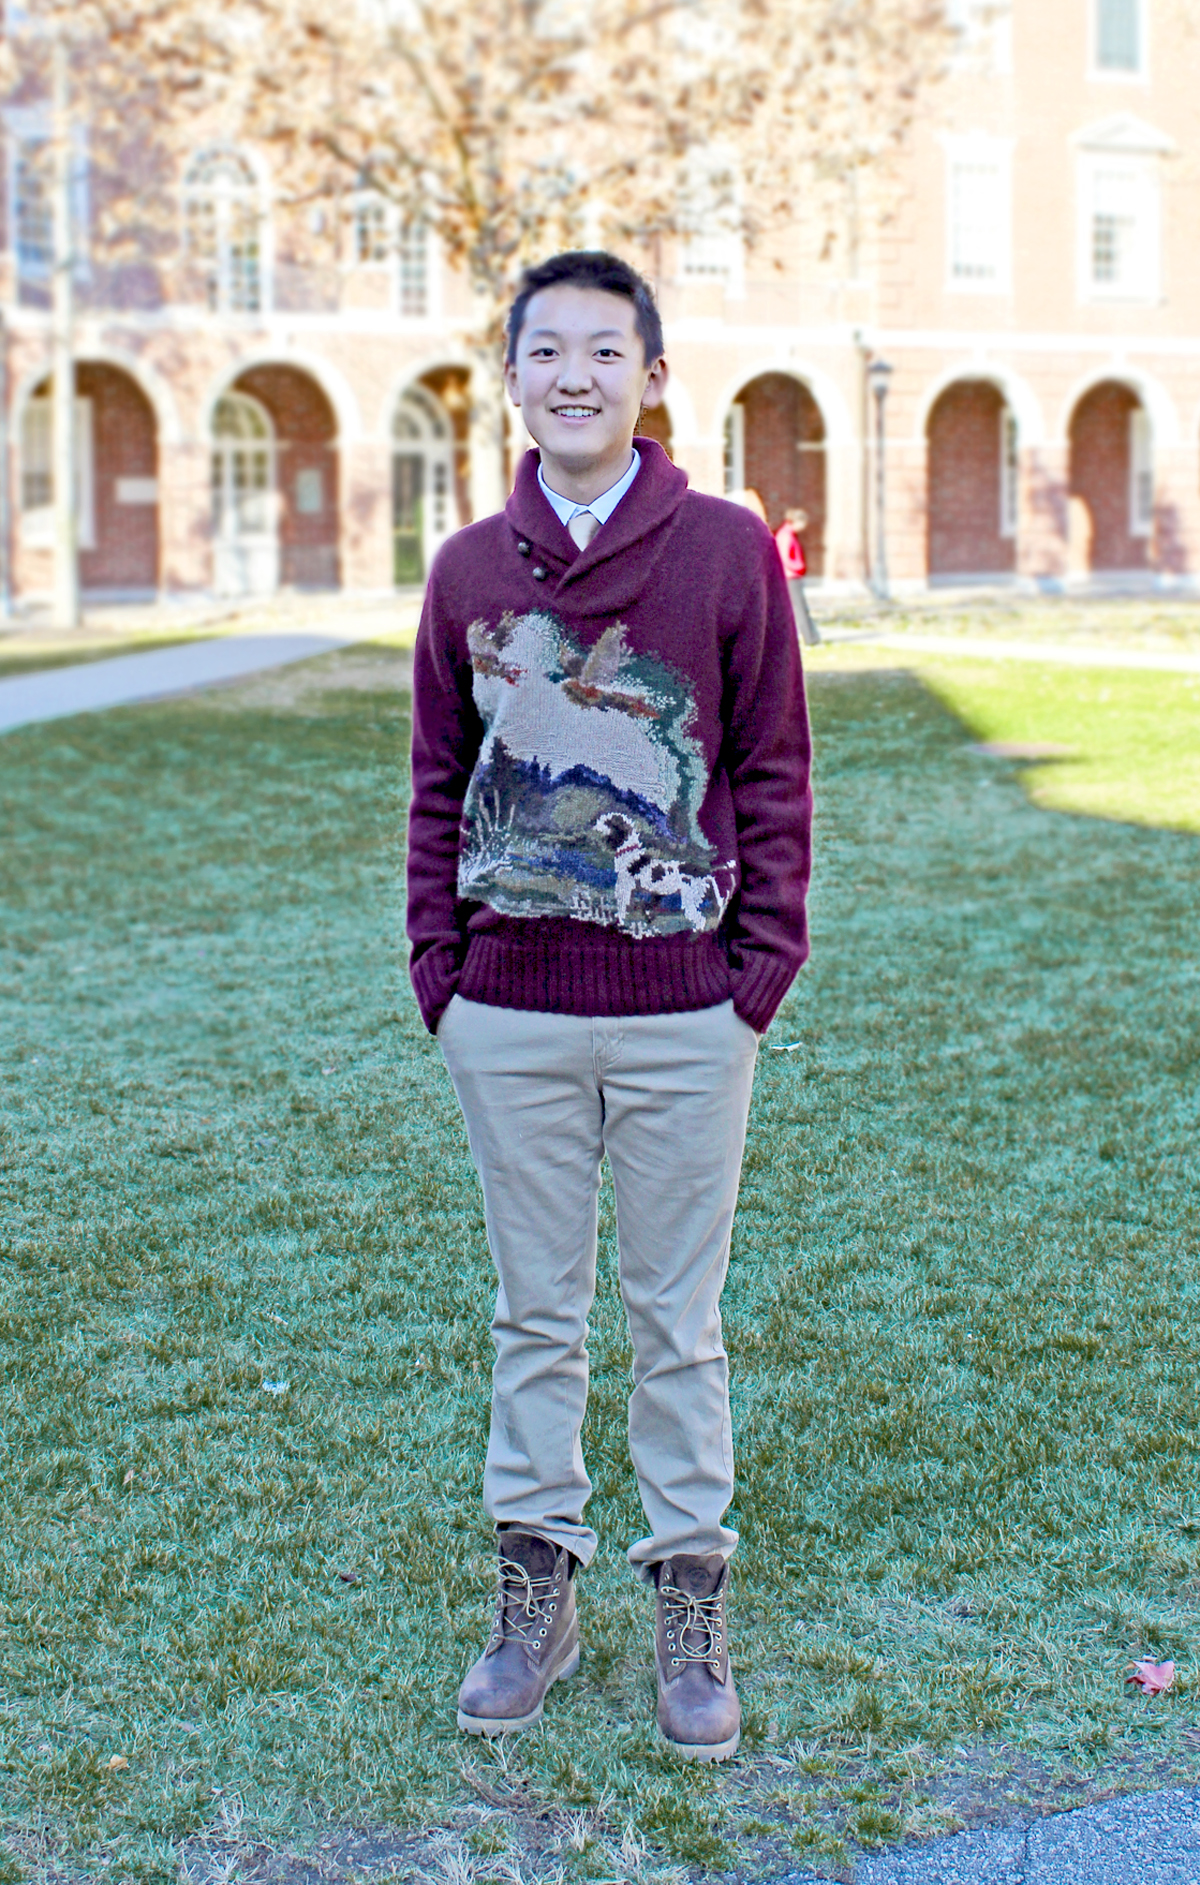 Alex is from Michigan and is a Sophomore at the Phillips Exeter Academy (Class of 2016).